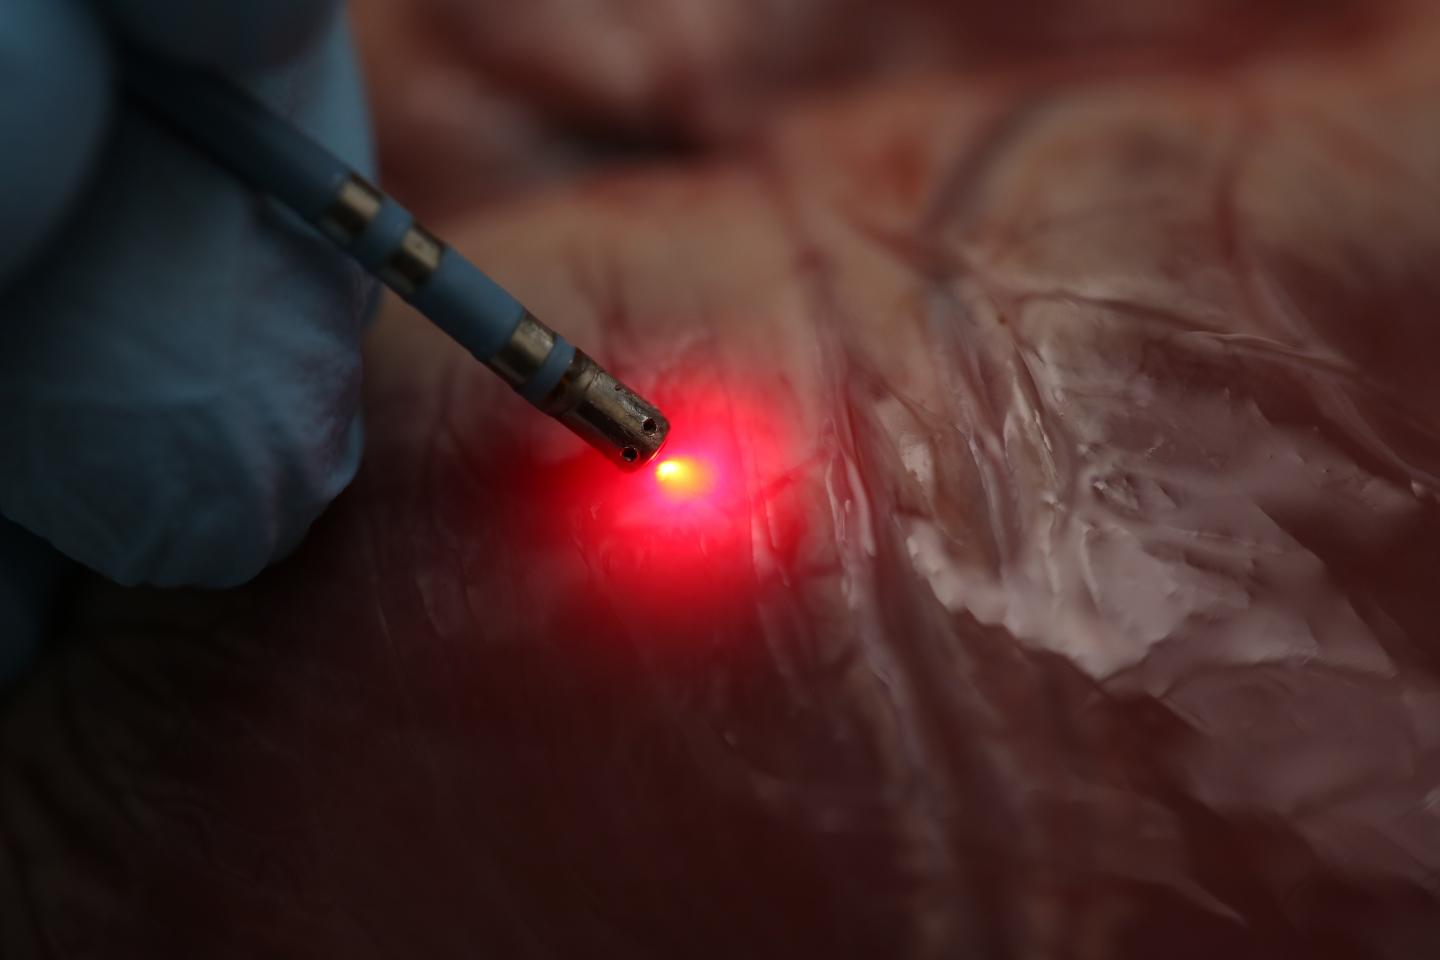 Spectral Mapping of Heart Tissue Could Help Improve Ablation Therapy